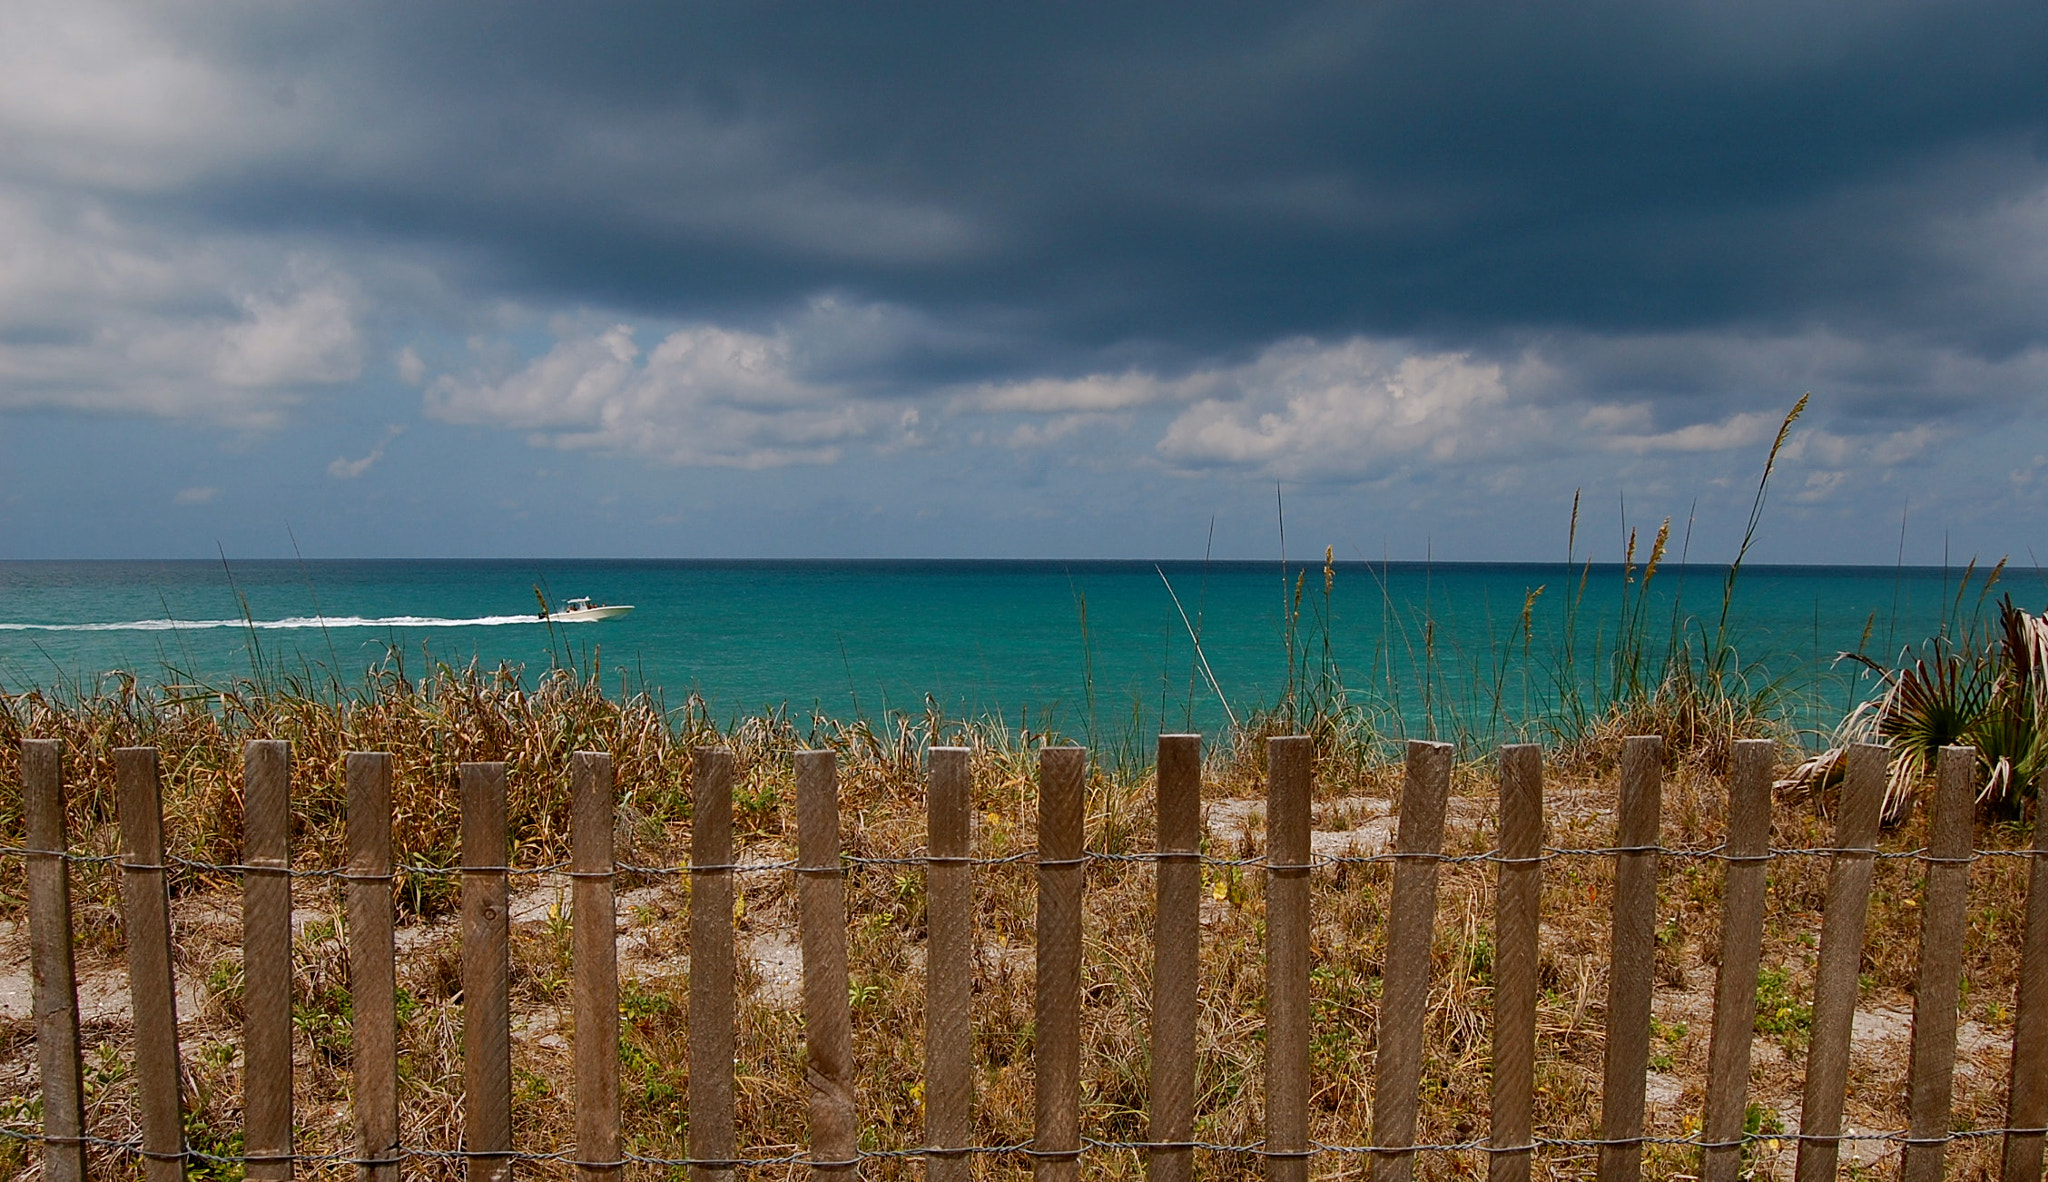 Photograph Florida Summer by Ed Pritchard on 500px